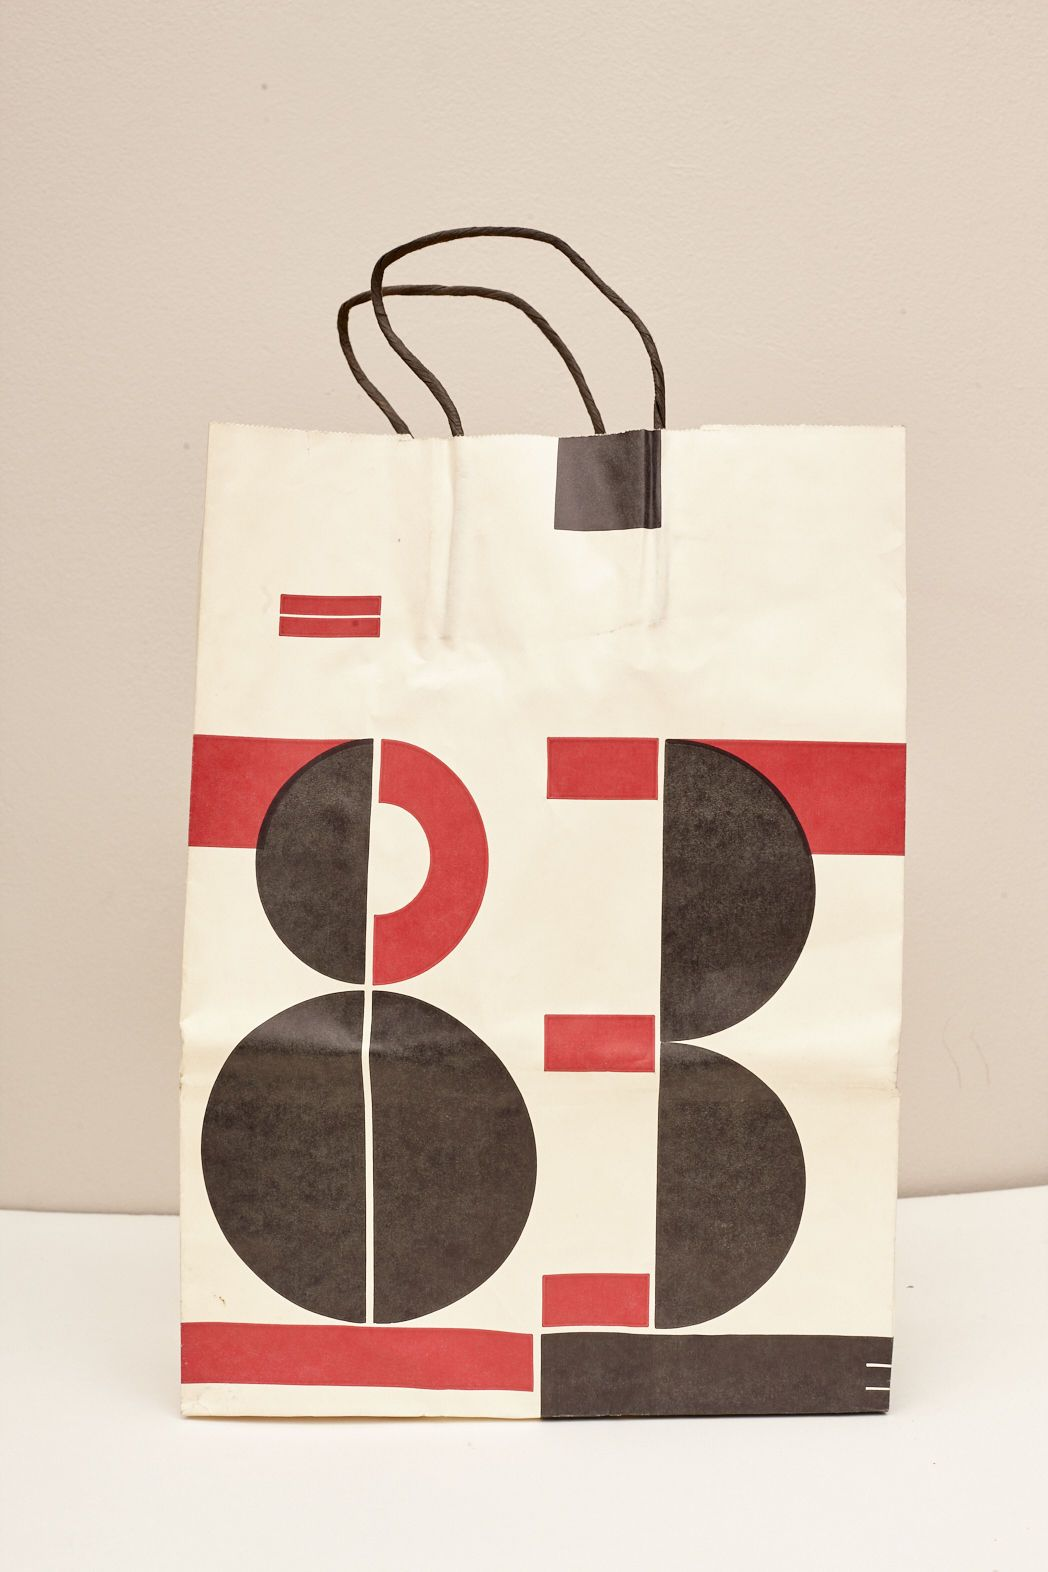 Bloomingdales Vintage 1983 Paper Shopping Bag | Collectibles, Advertising, Retail Stores | eBay!